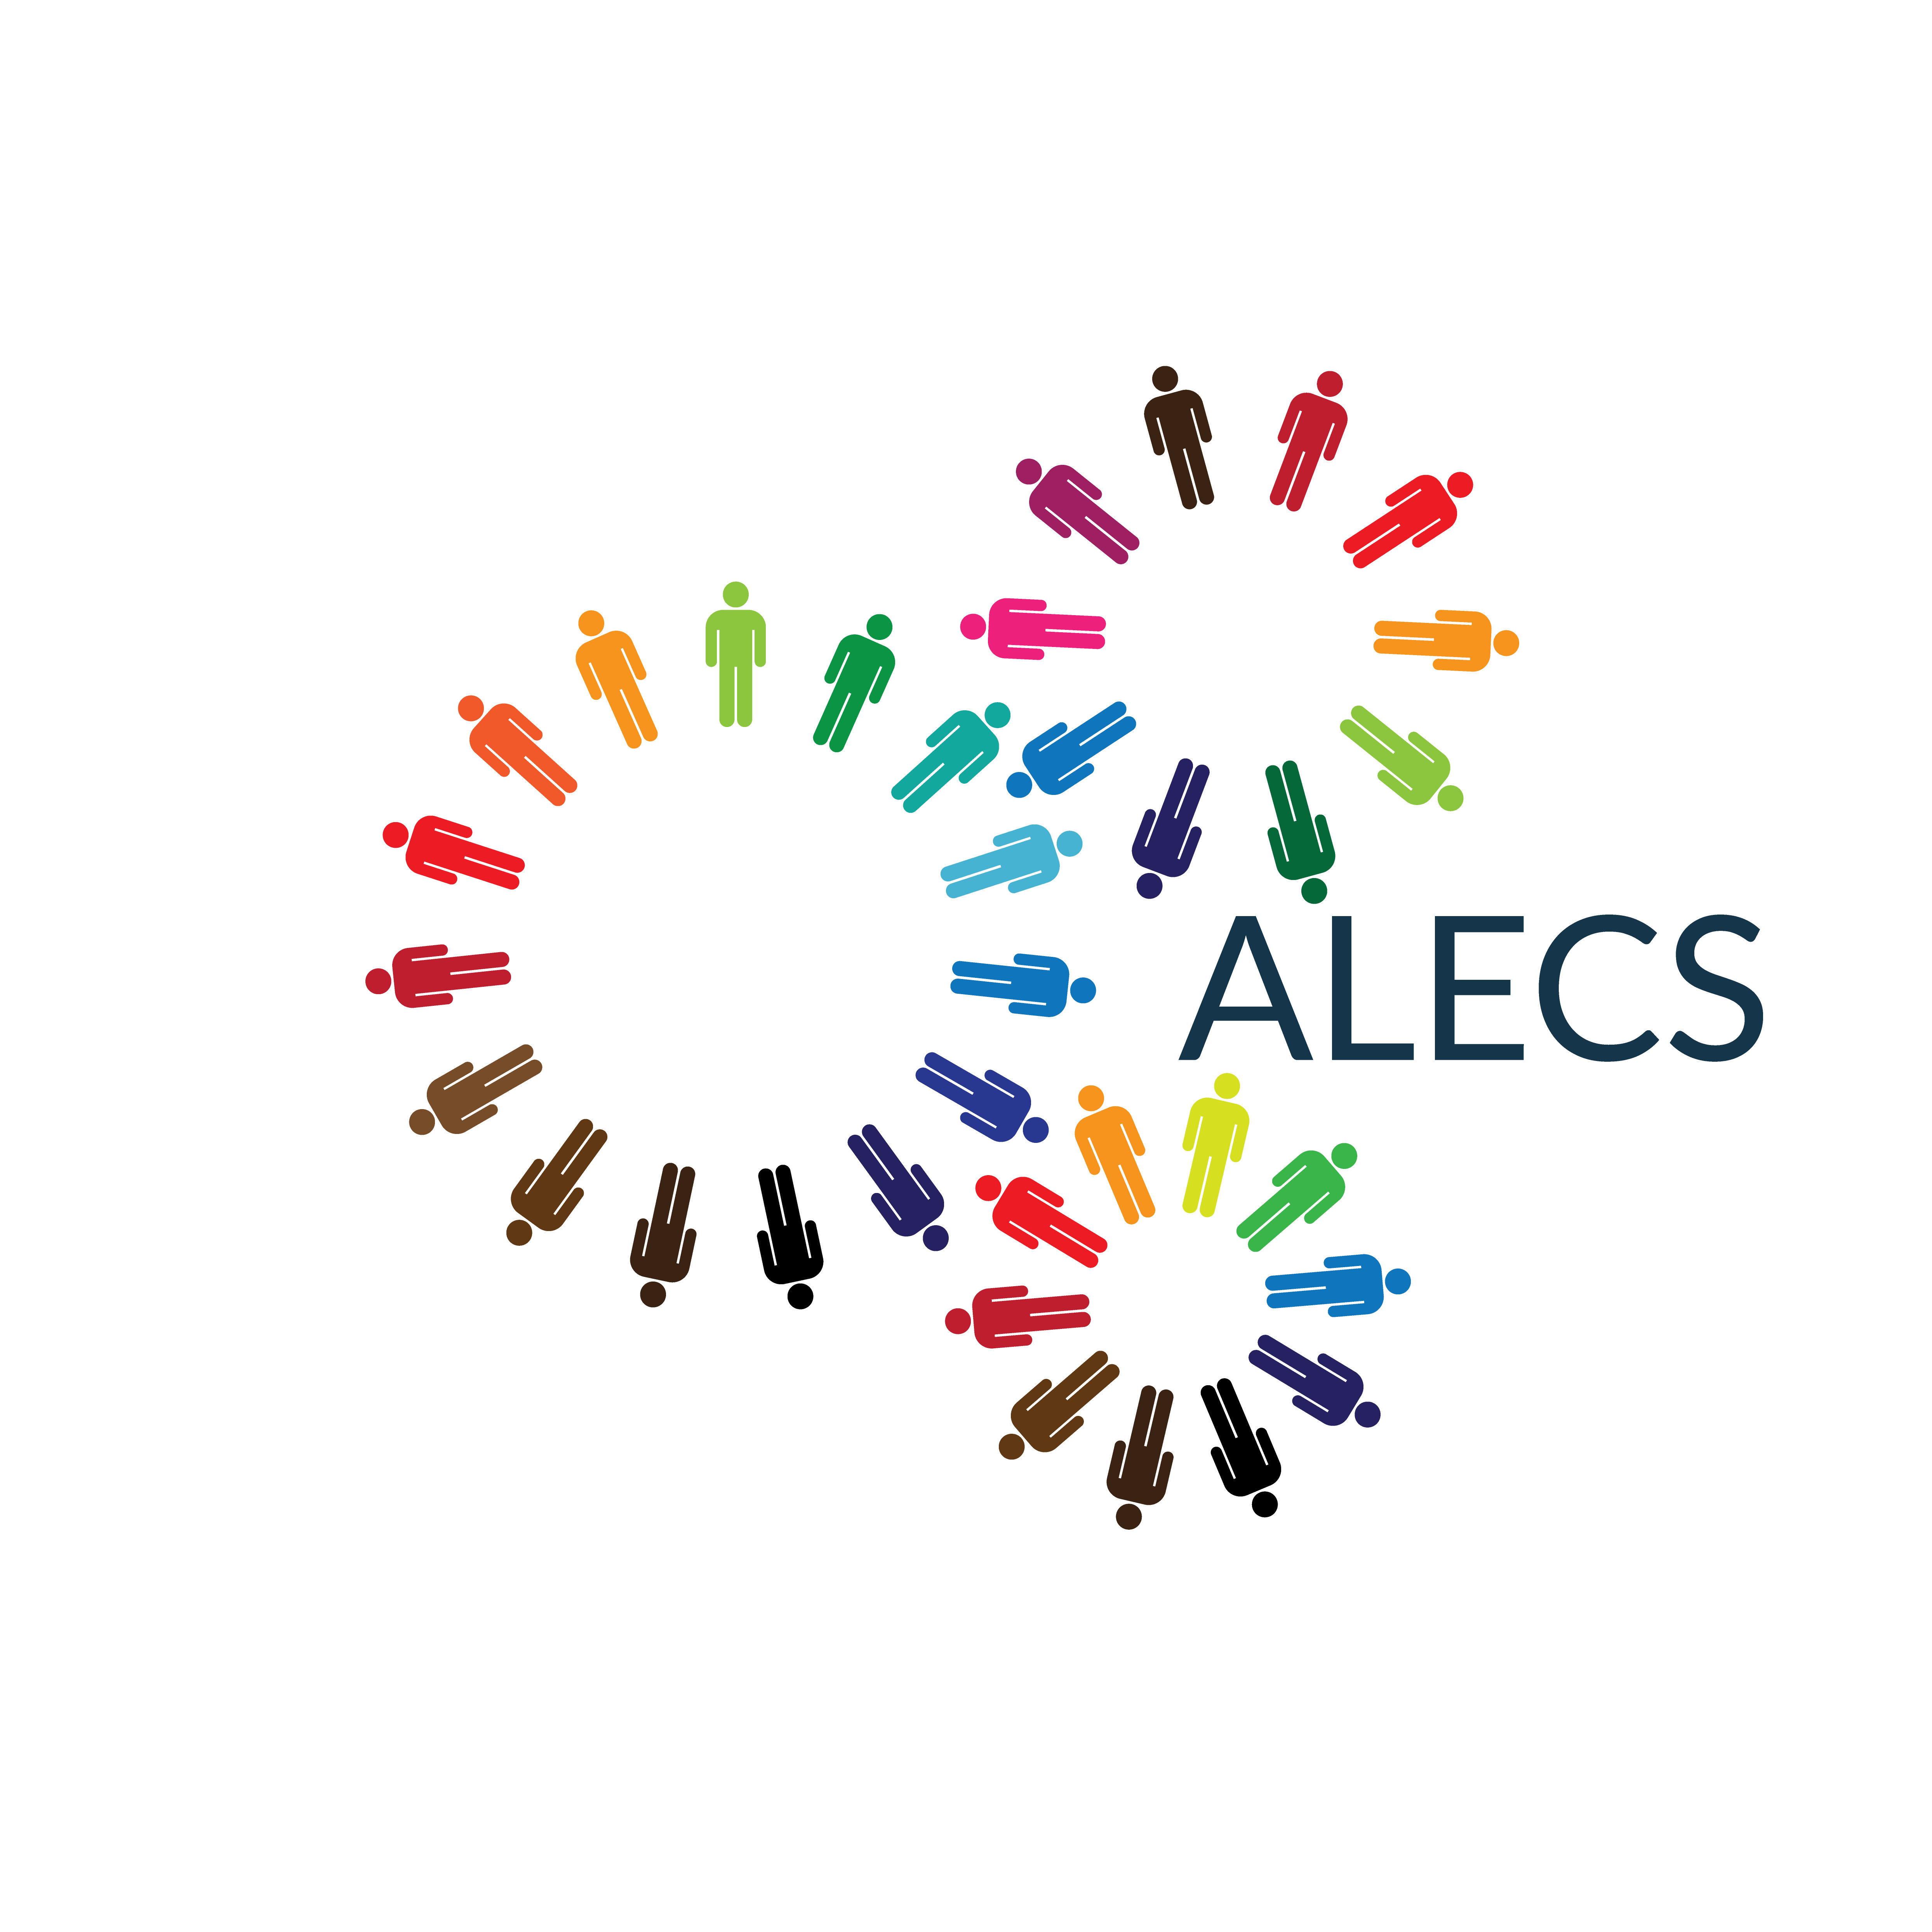 Image of (262959) ALECS: a two-year Marie Skłodowska-Curie COFUND Fellowship at Lero, the Irish Software Research Centre